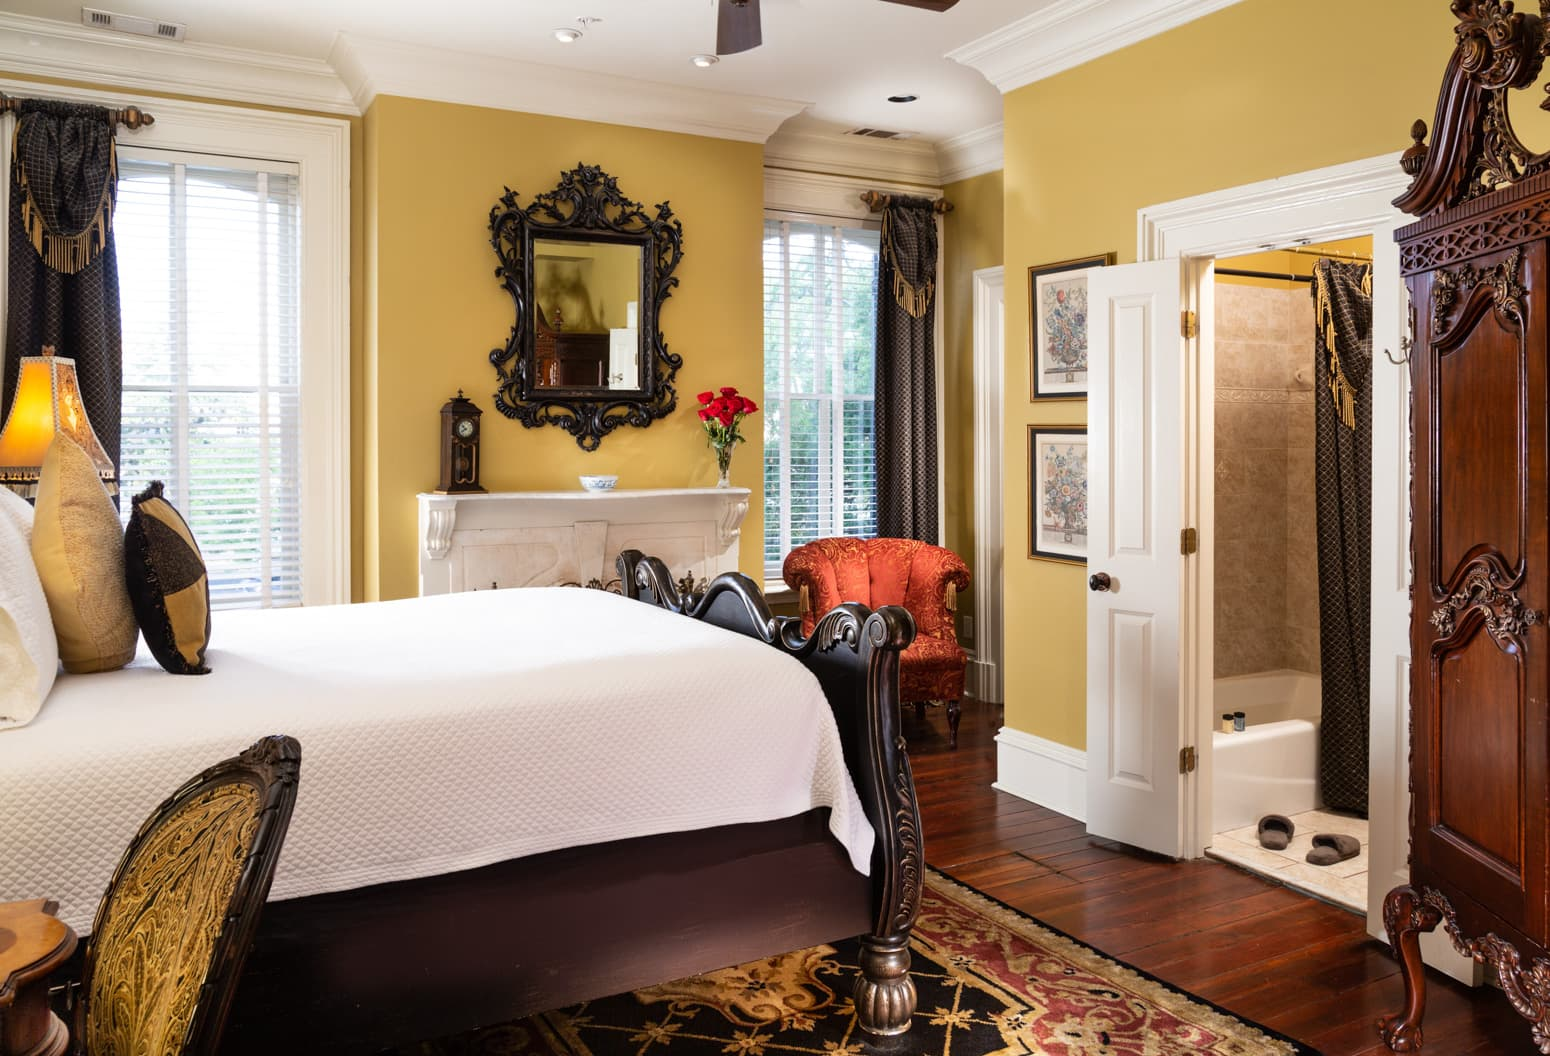 Bed in the Madison Square room with lavish furnishings and a walk-in shower